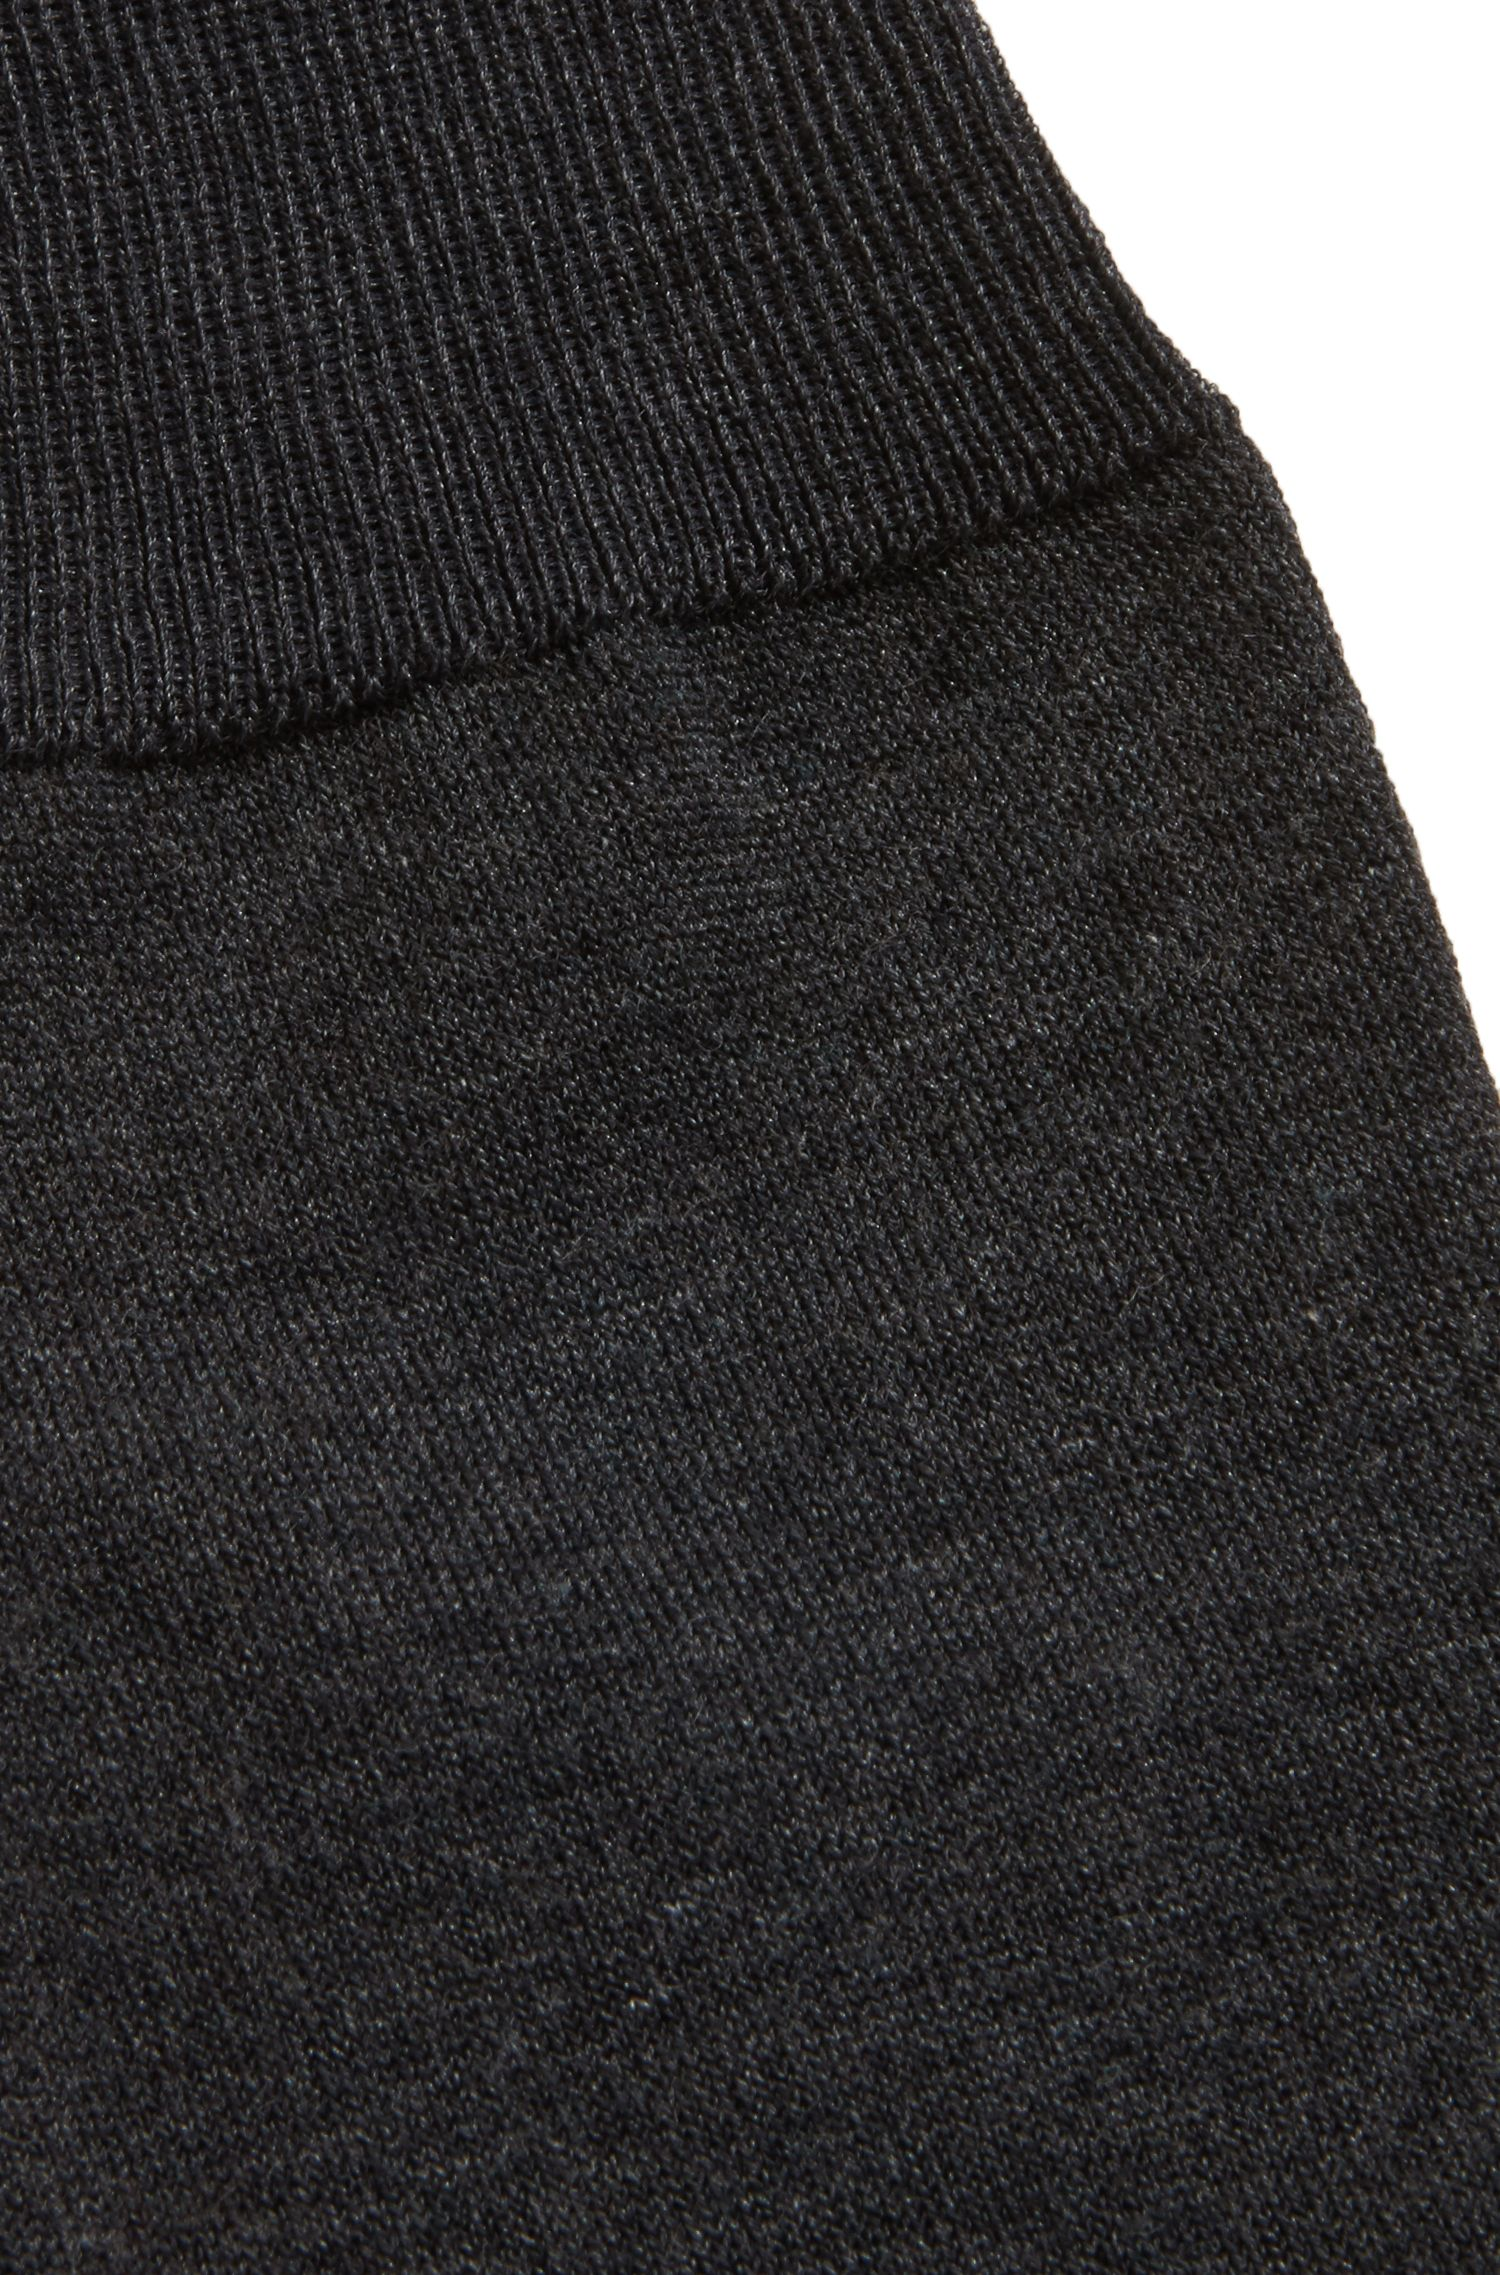 Knee-high socks in mercerised stretch cotton, Anthracite